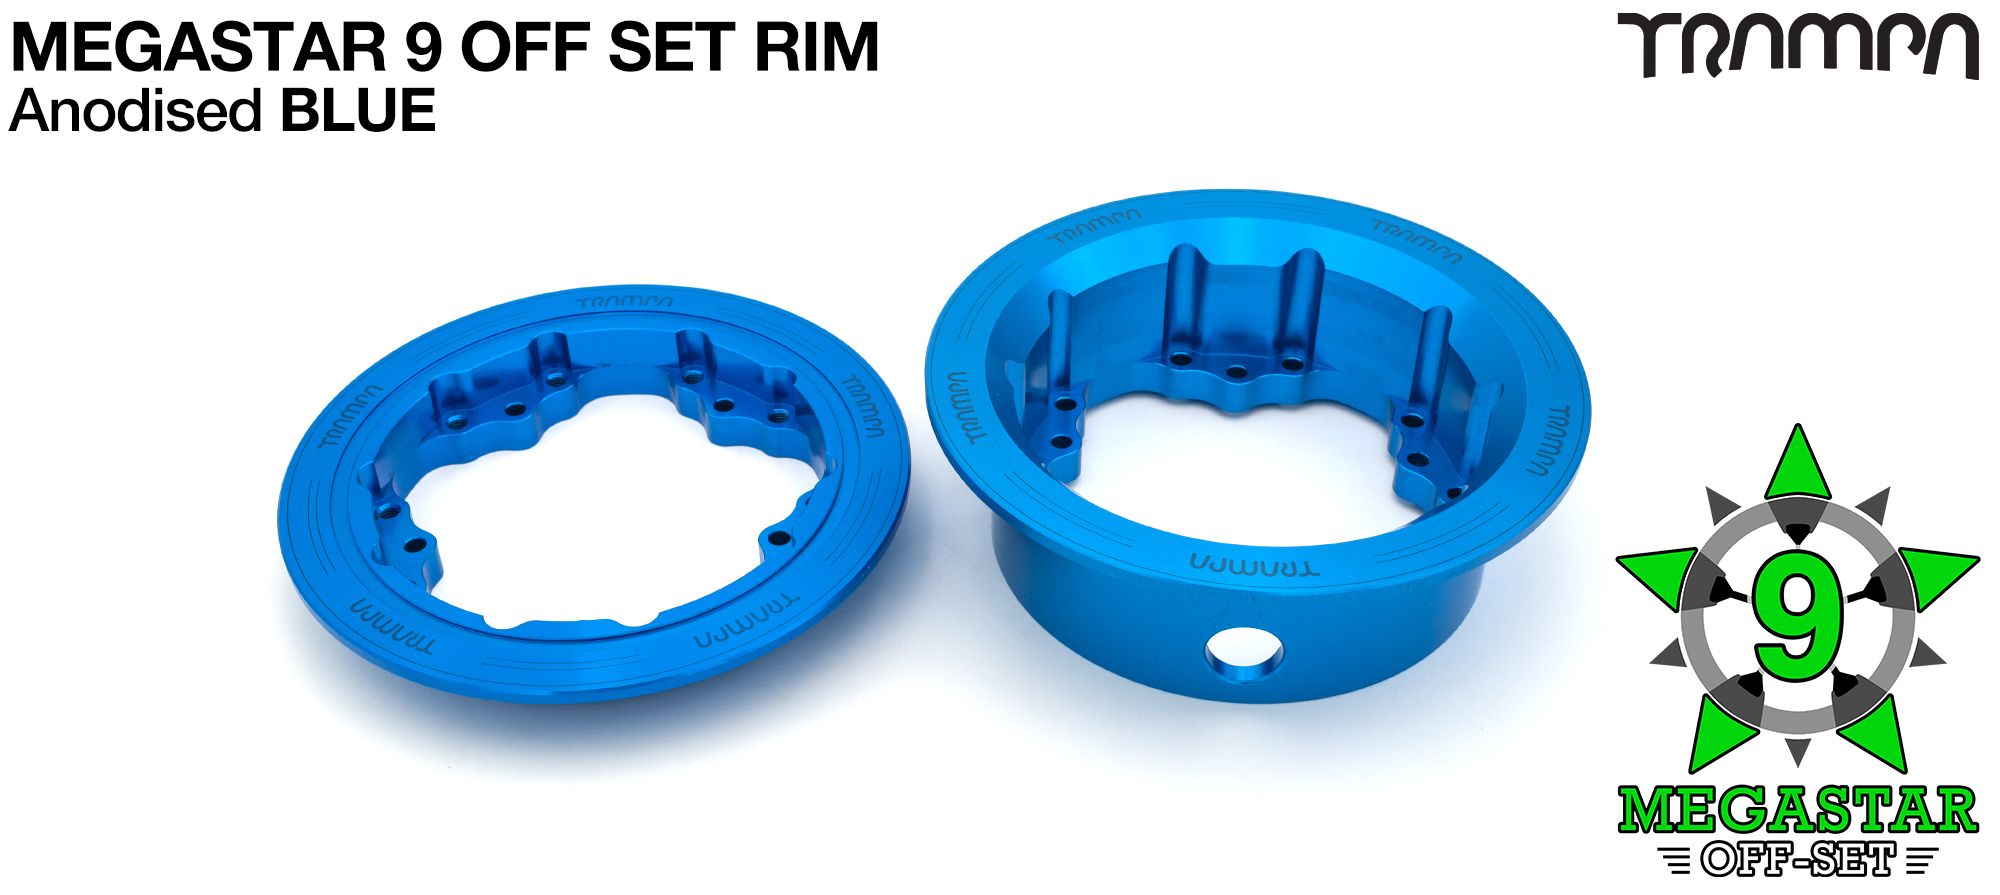 9 Inch DEEP DISH Off-Set MEGASTAR Rims BLUE - Place two on the rear of your Electric Mountainboard for extra Grip & Top Speed! (COPY)